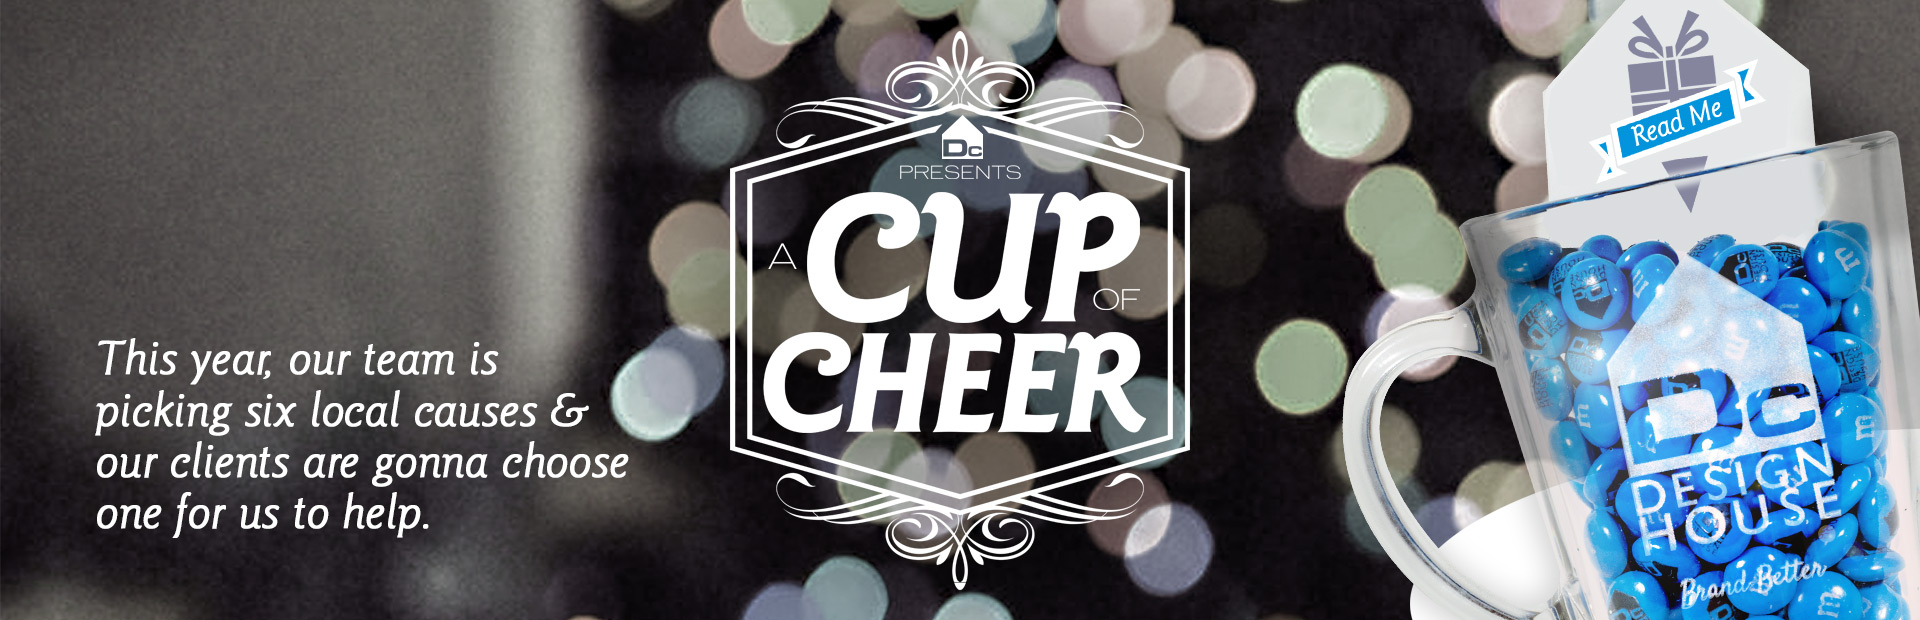 Dc Presents a Cup of Cheer